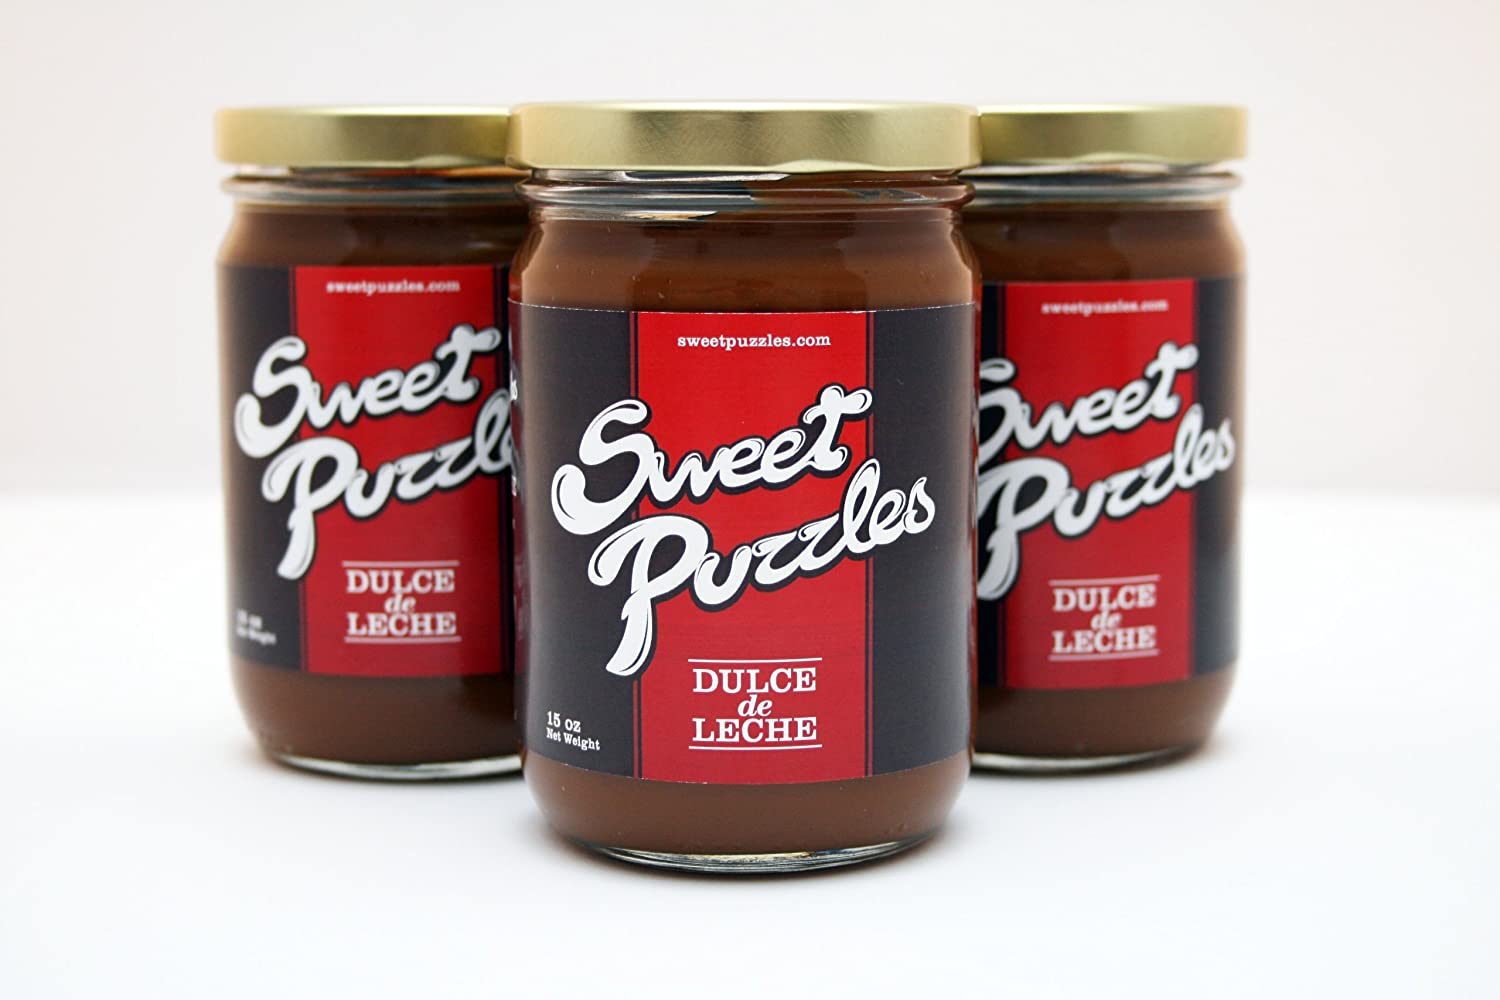 Amazon.com : Dulce de Leche SweetPuzzles - 15 Oz : Gourmet Food : Grocery & Gourmet Food